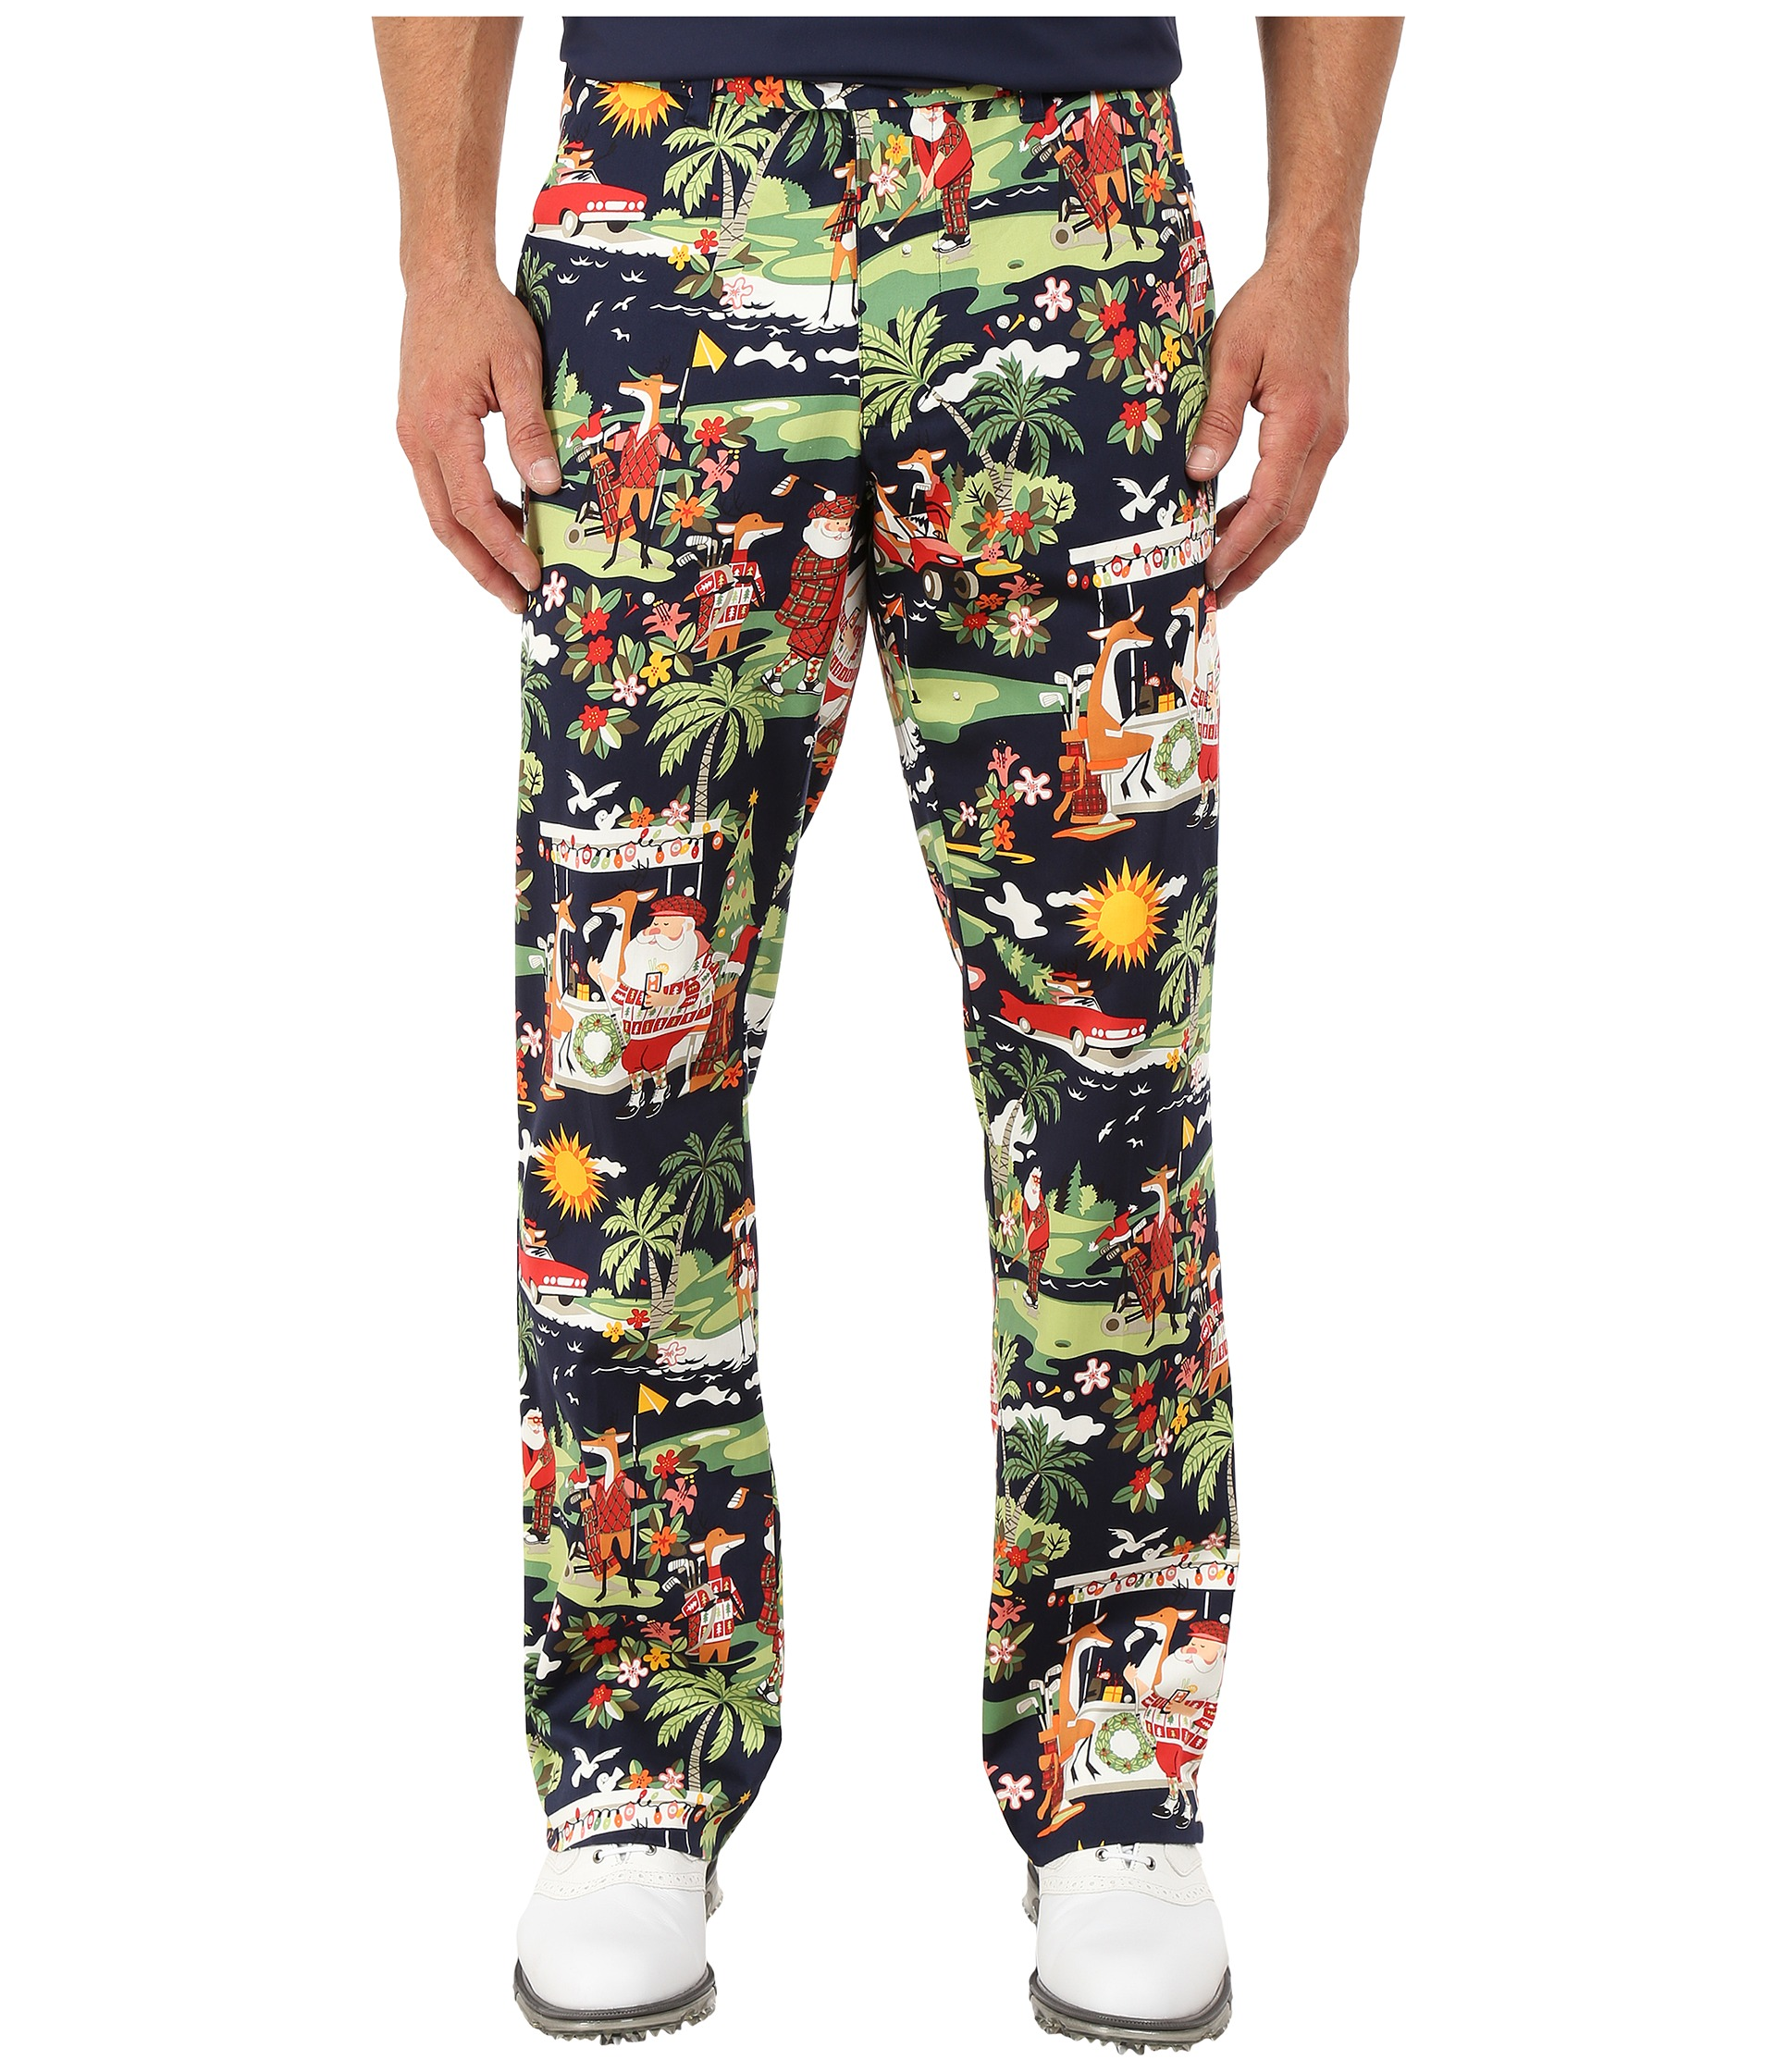 8d111ab38 ... Clothing Loudmouth Gloves: Loudmouth Golf Golfin Santa Pants